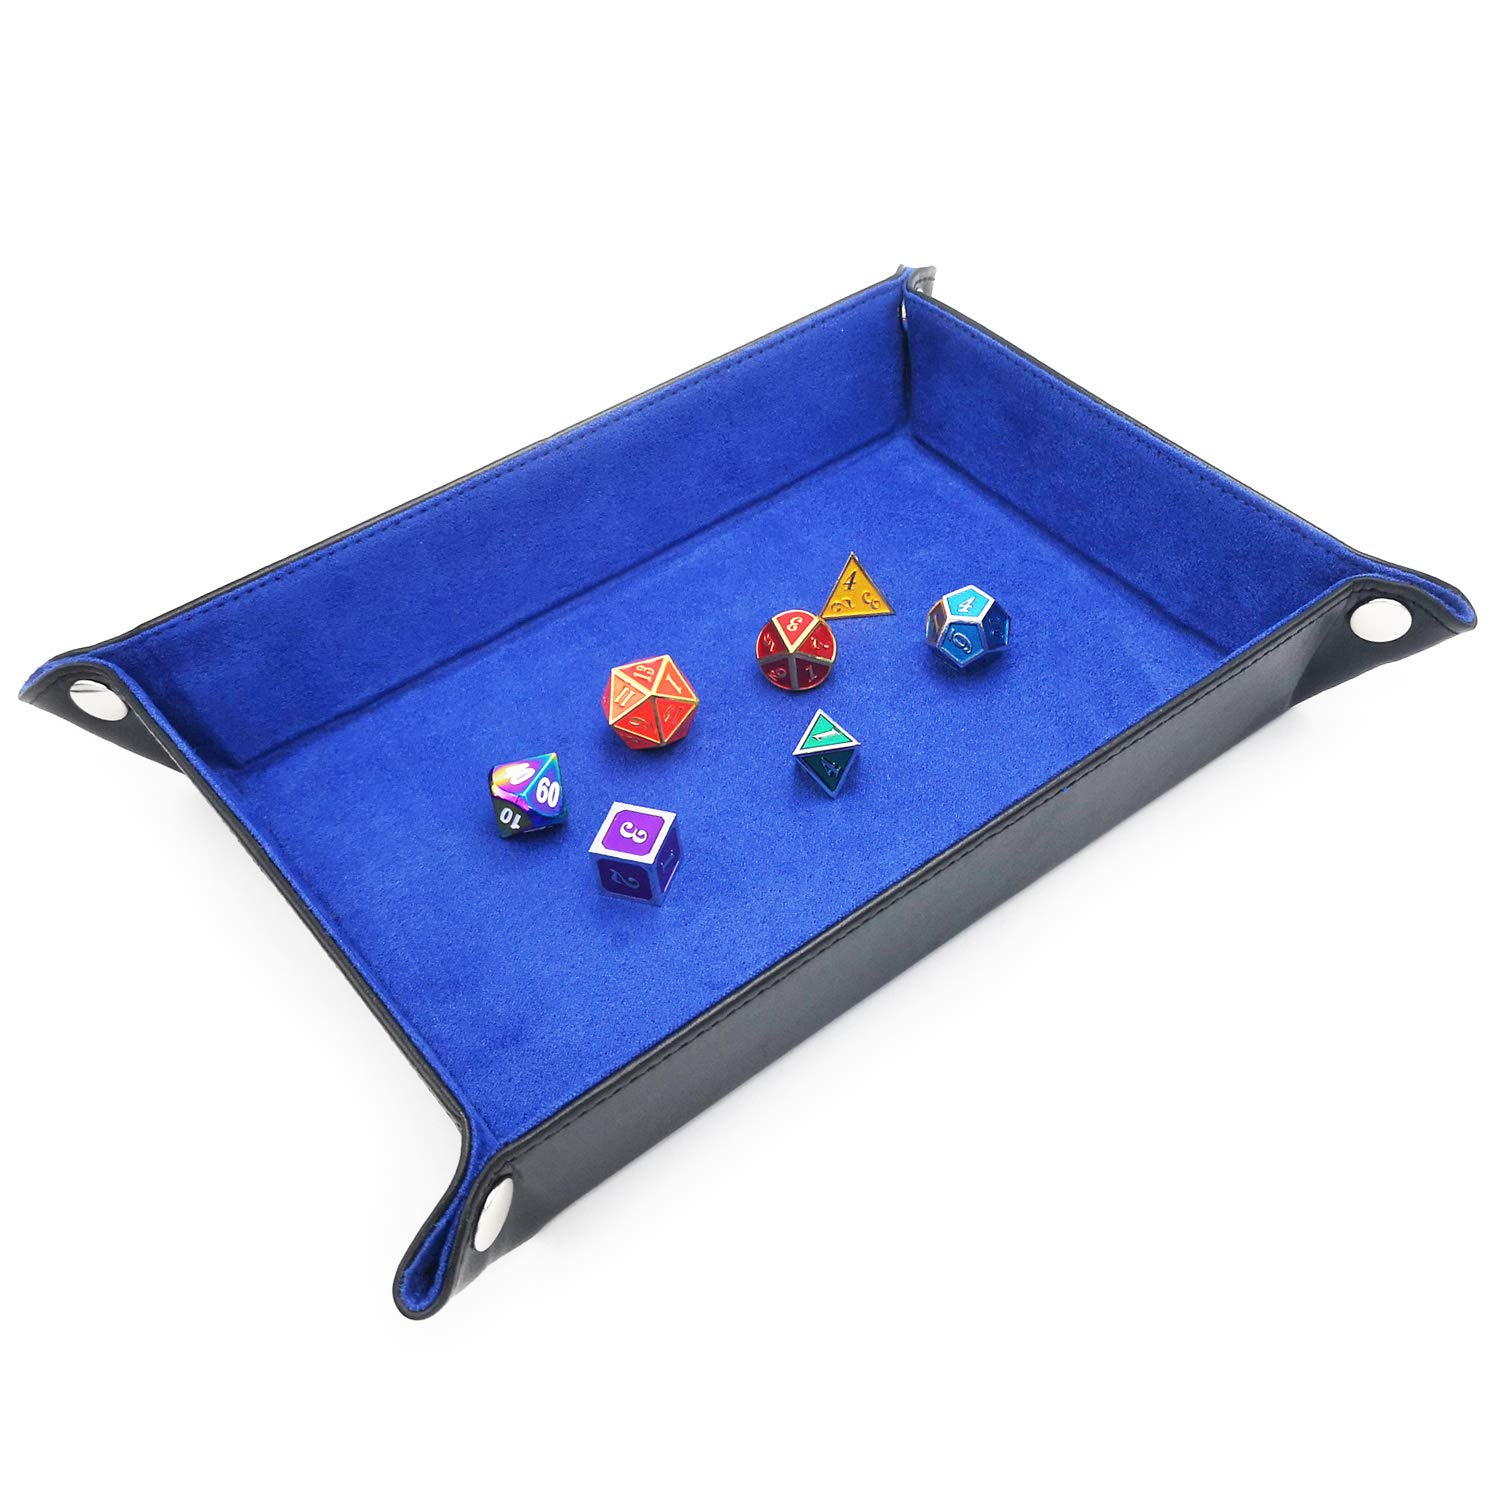 Haxtec DT01 DND Dice Tray PU Leather Folding Dice Tray Velvet RPG Table Games as DND SZ